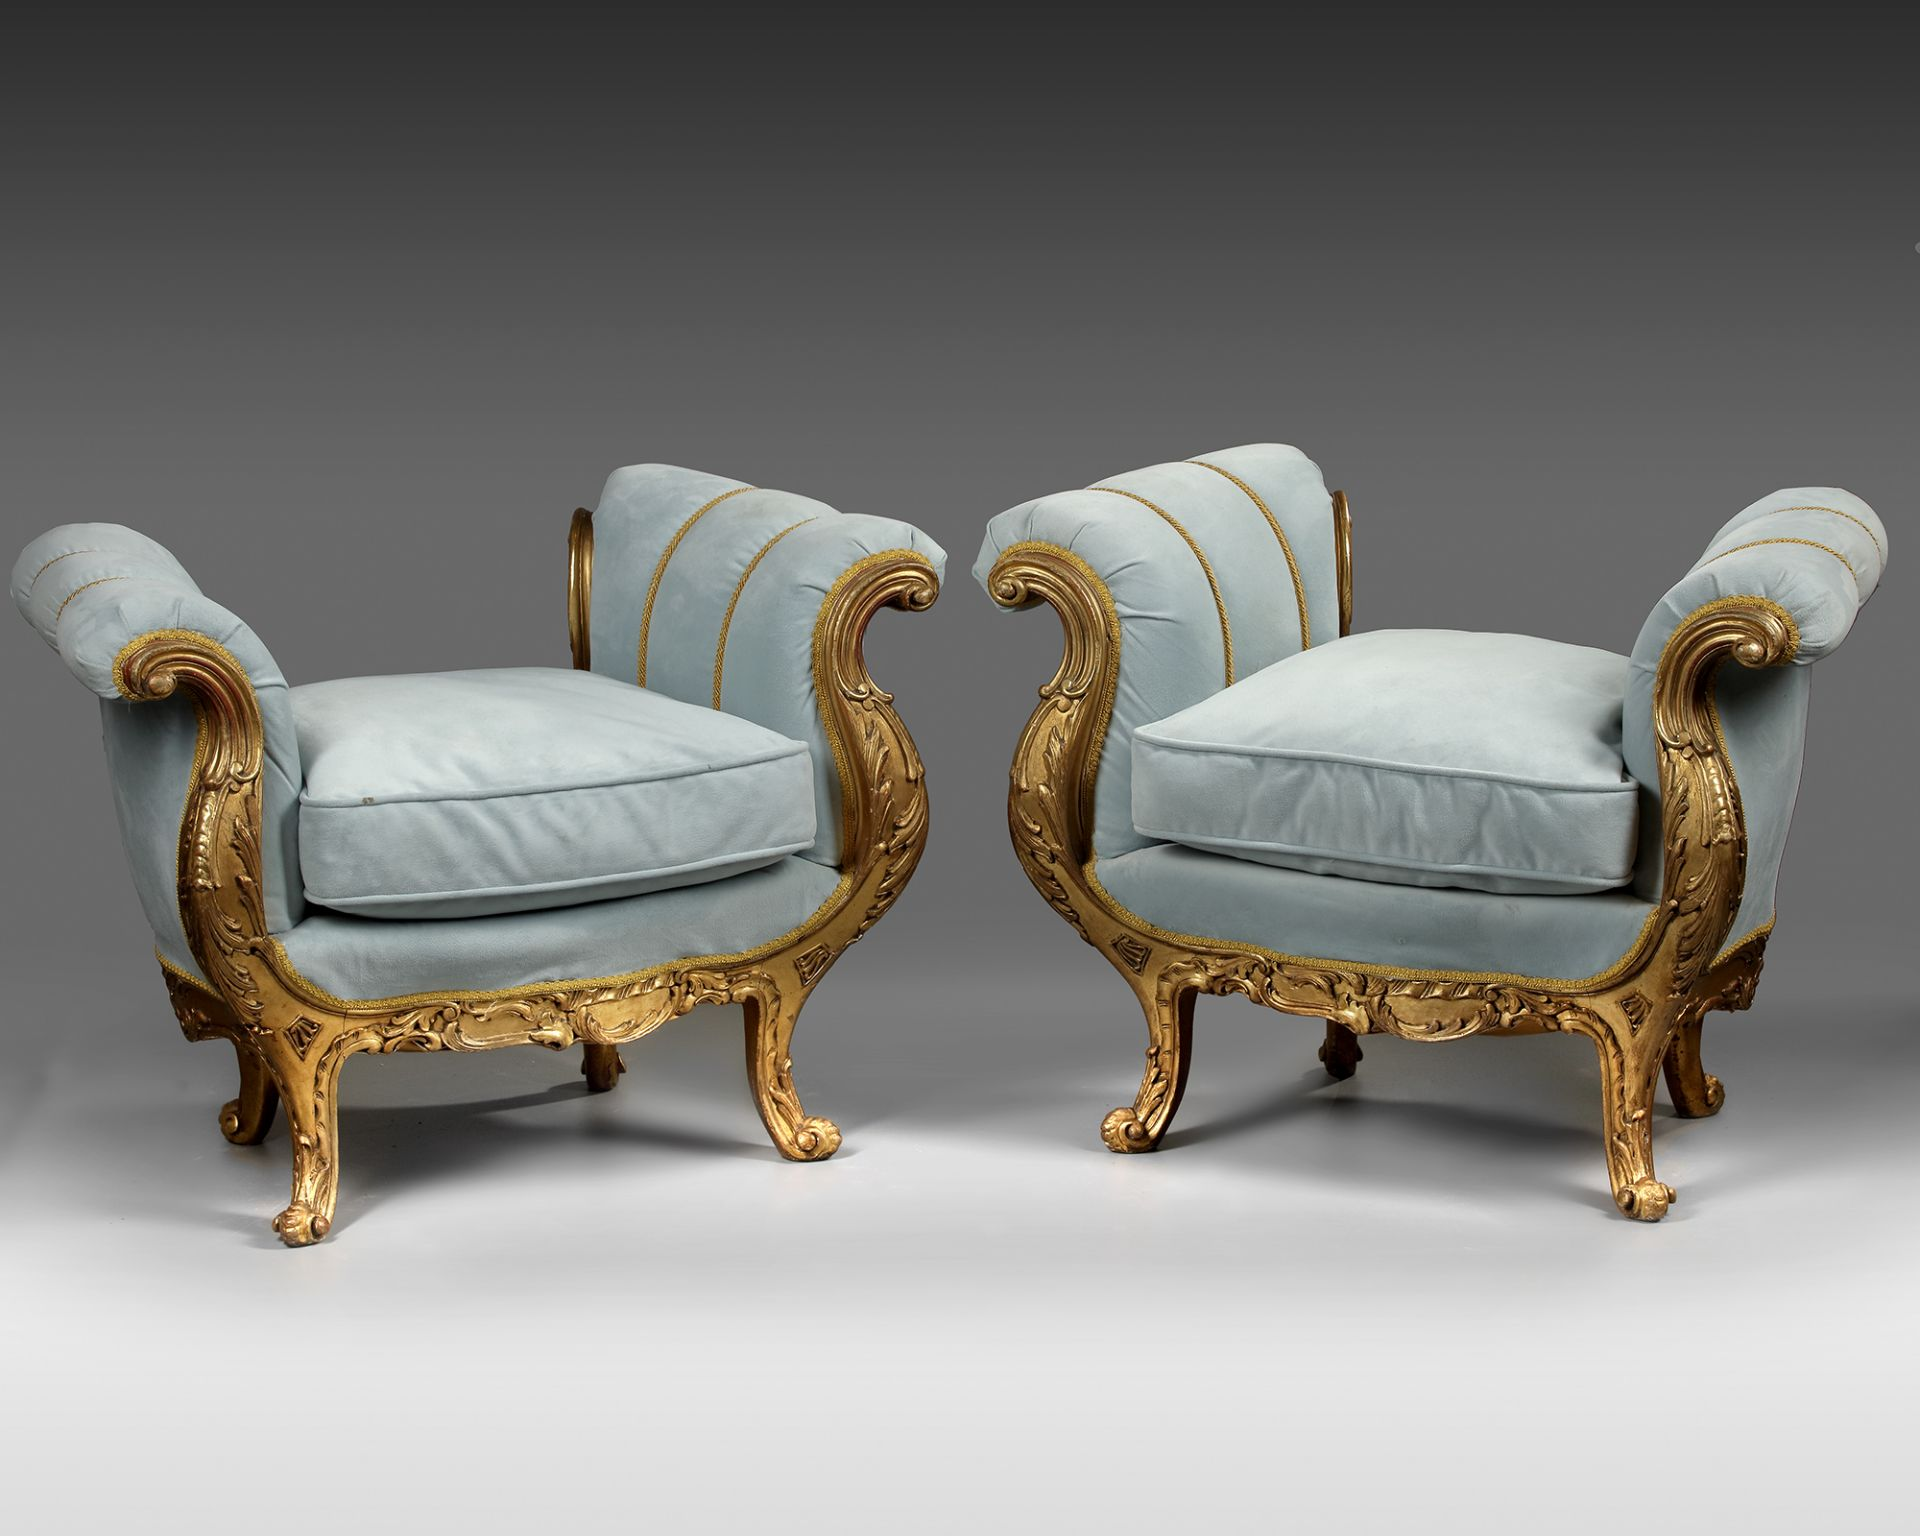 A PAIR OF FRENCH LOUIS XV STYLE GILT WOOD POUFS, LATE 19TH CENTURY - Image 5 of 5